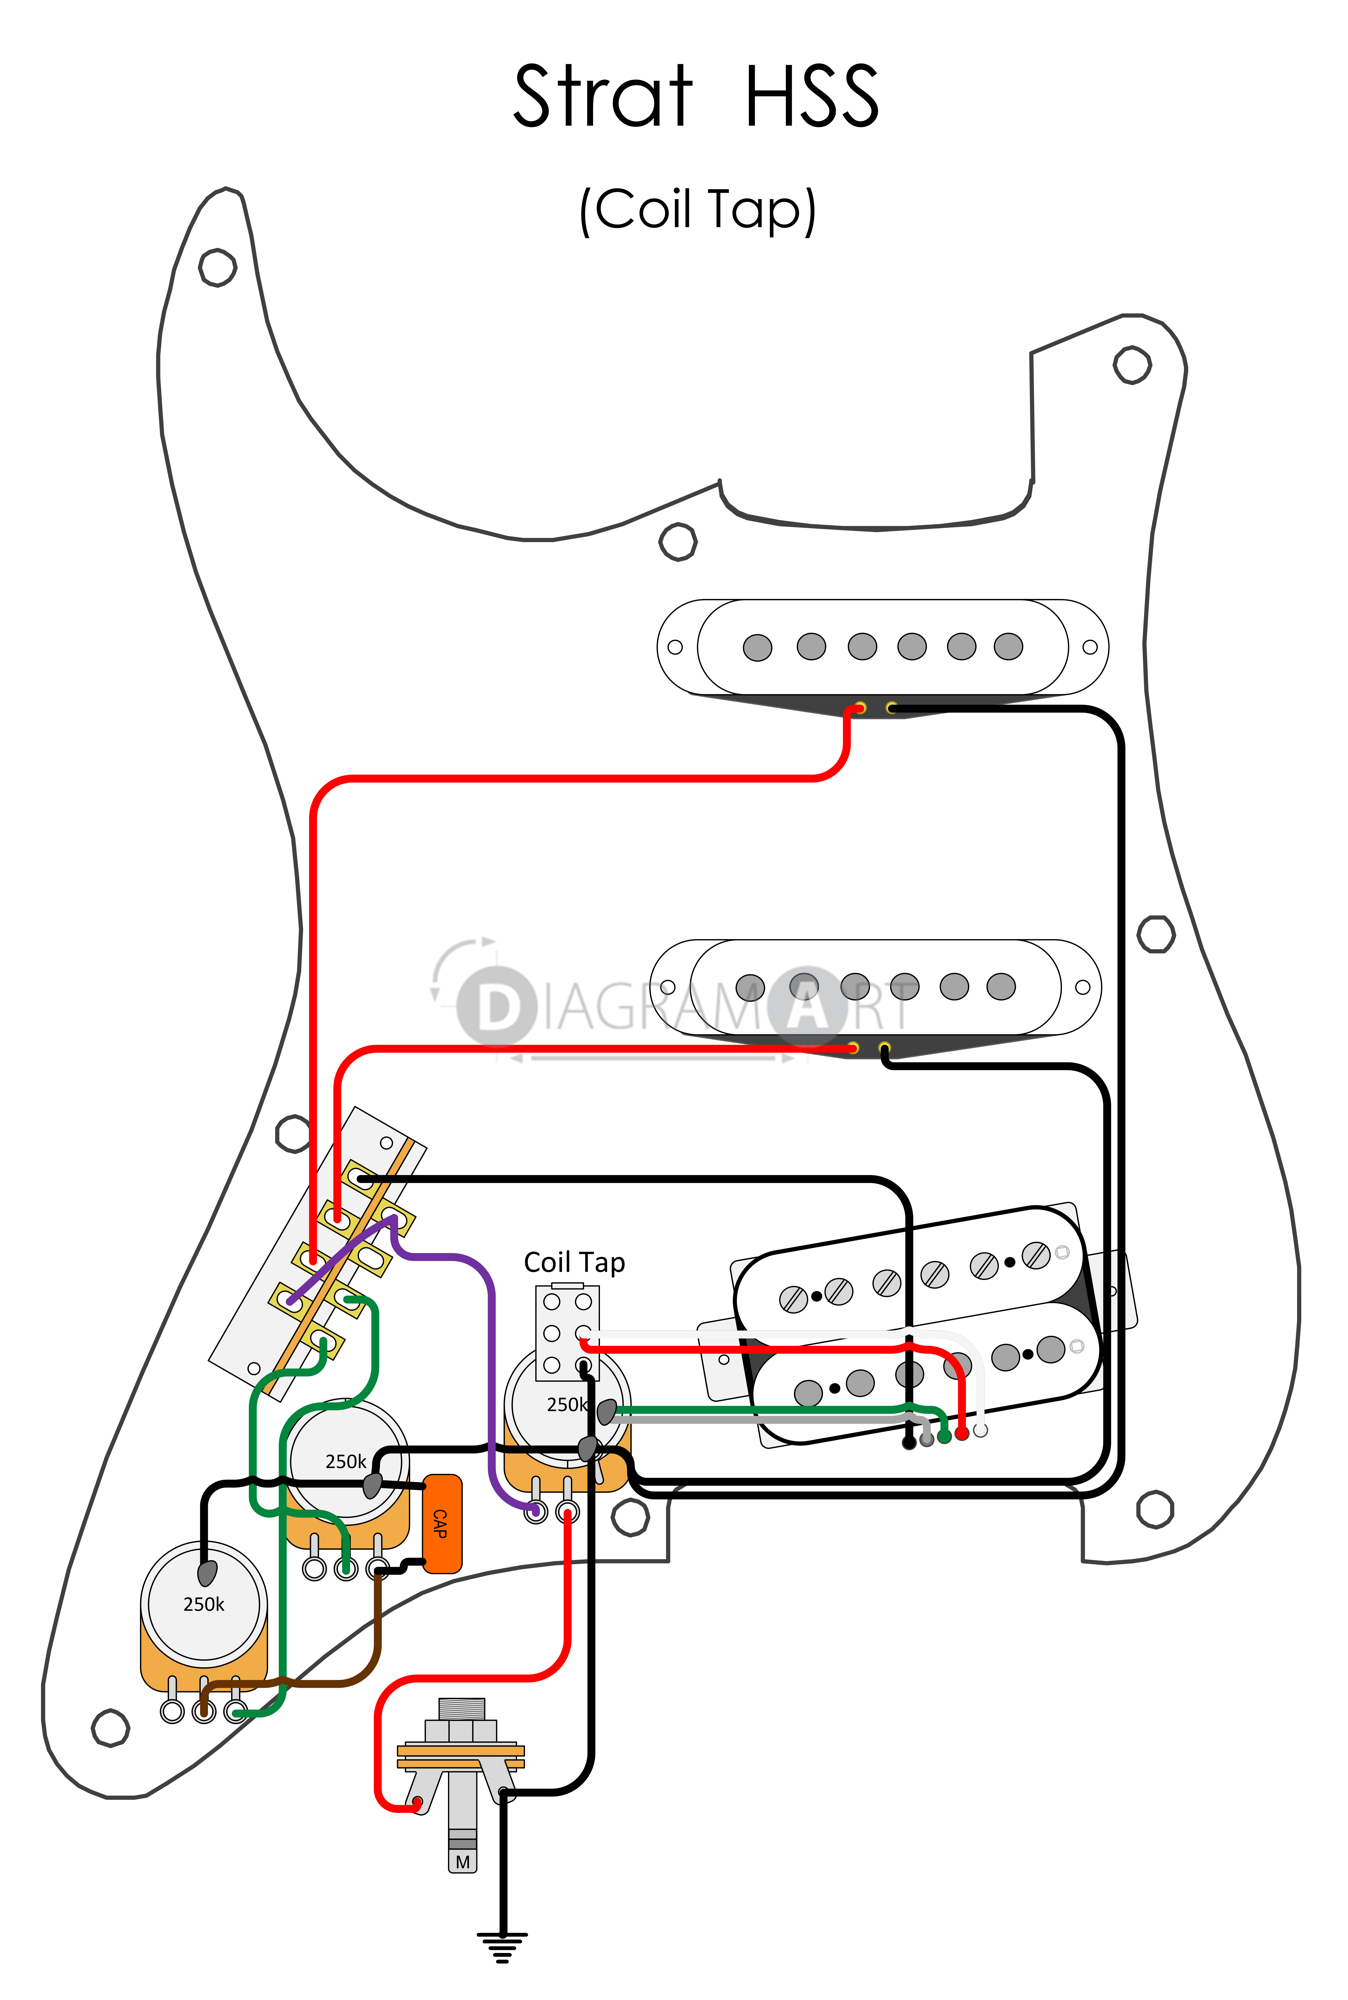 New Wiring Diagram Fender Strat 5 Way Switch Diagram Diagramsample Diagramtemplate Wiringdiagram Diagram Stratocaster Guitar Luthier Guitar Guitar Pickups